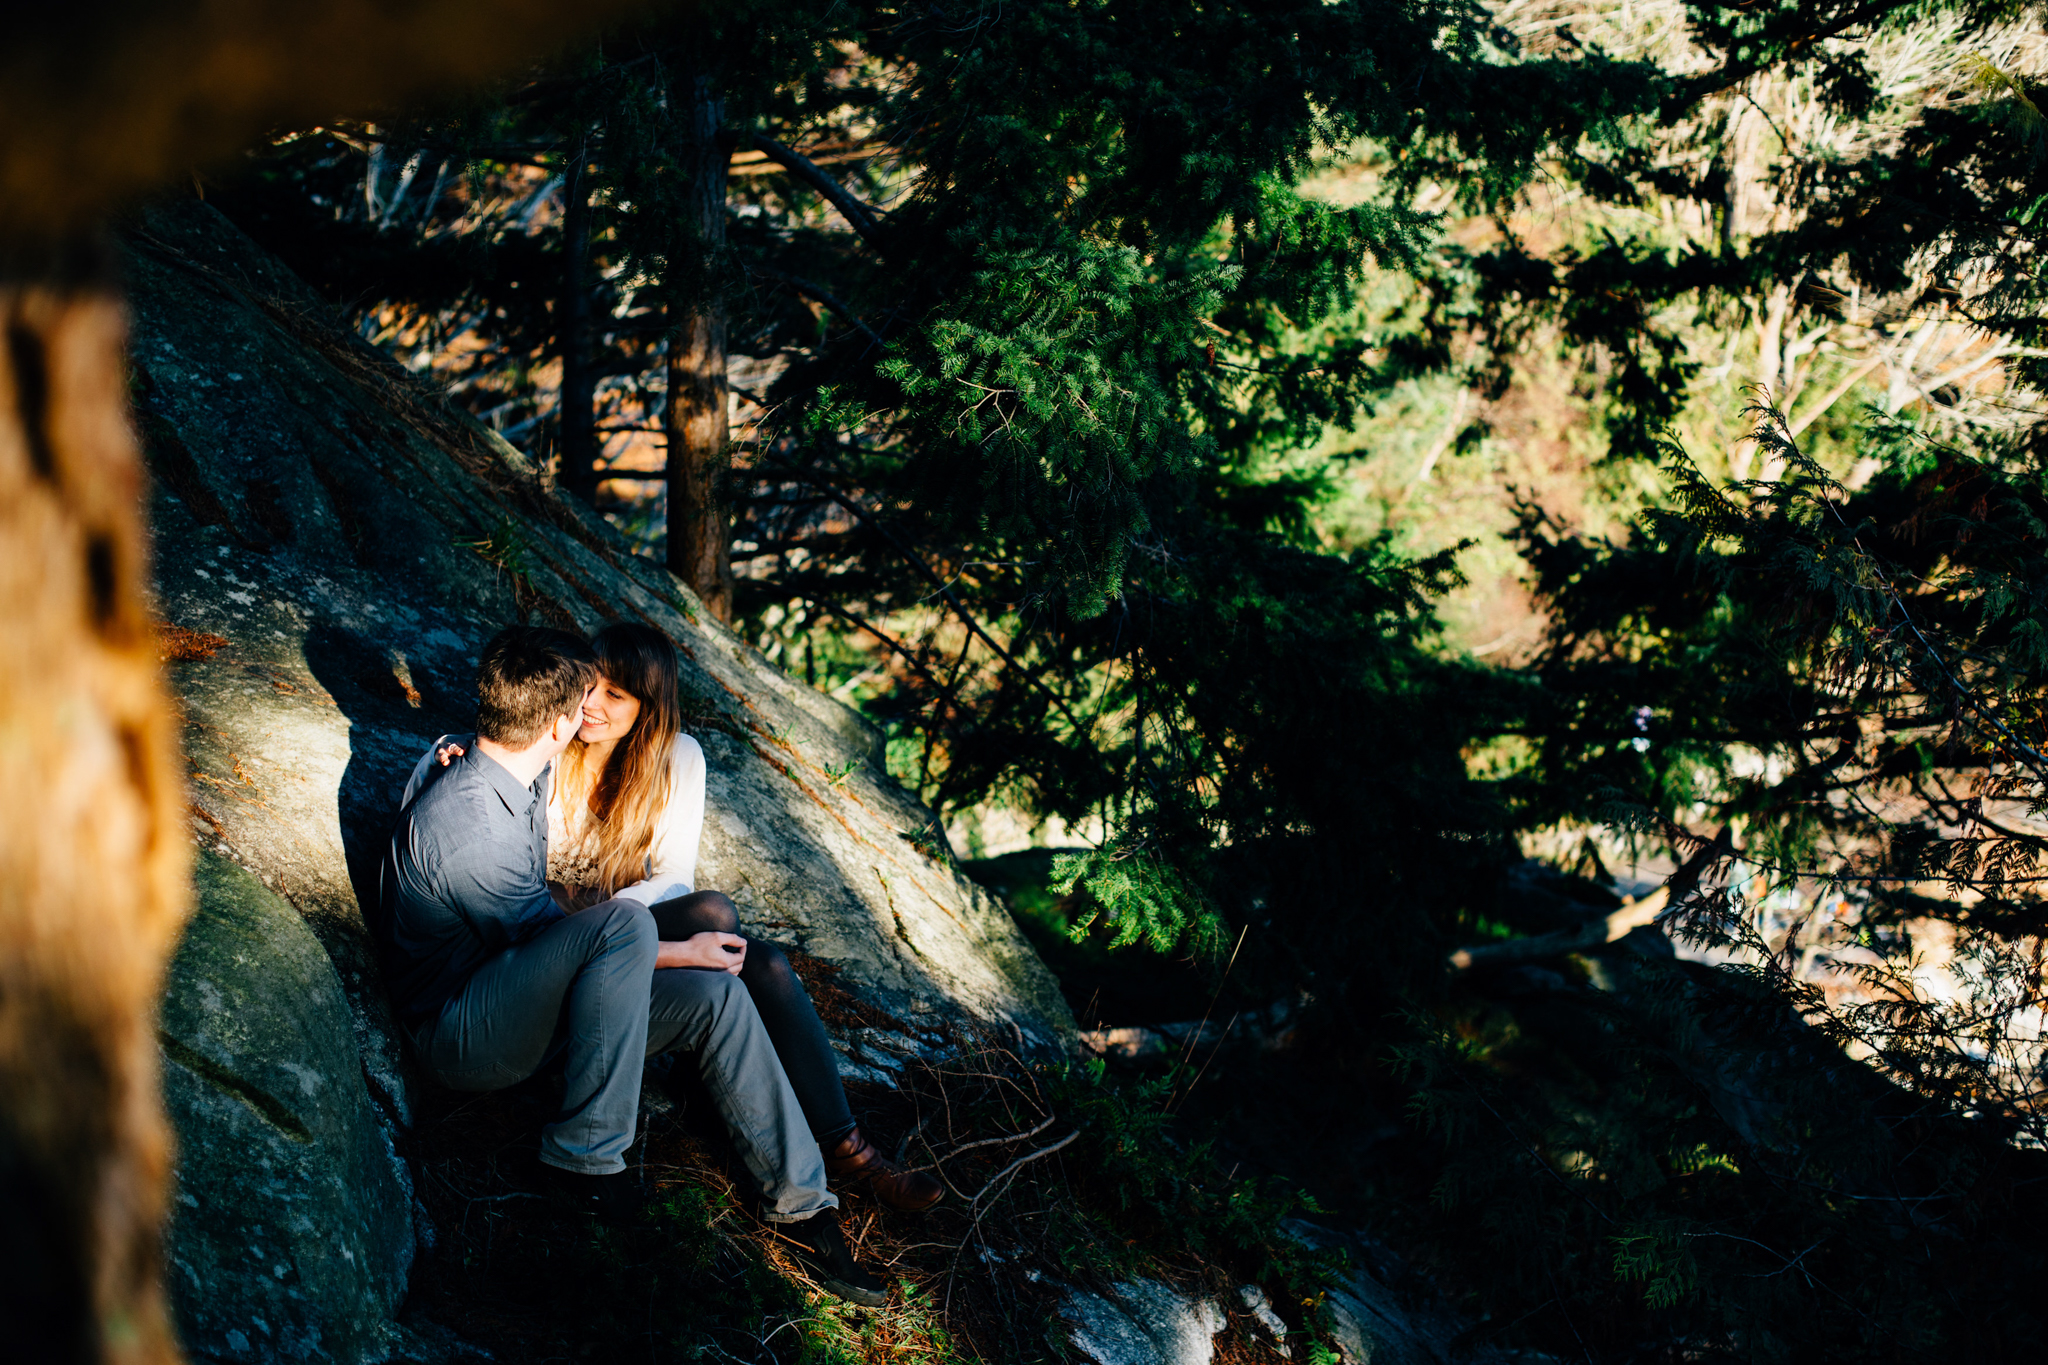 Vancouver Whytecliff Park Engagement Photographer - Emmy Lou Virginia Photography-31.jpg